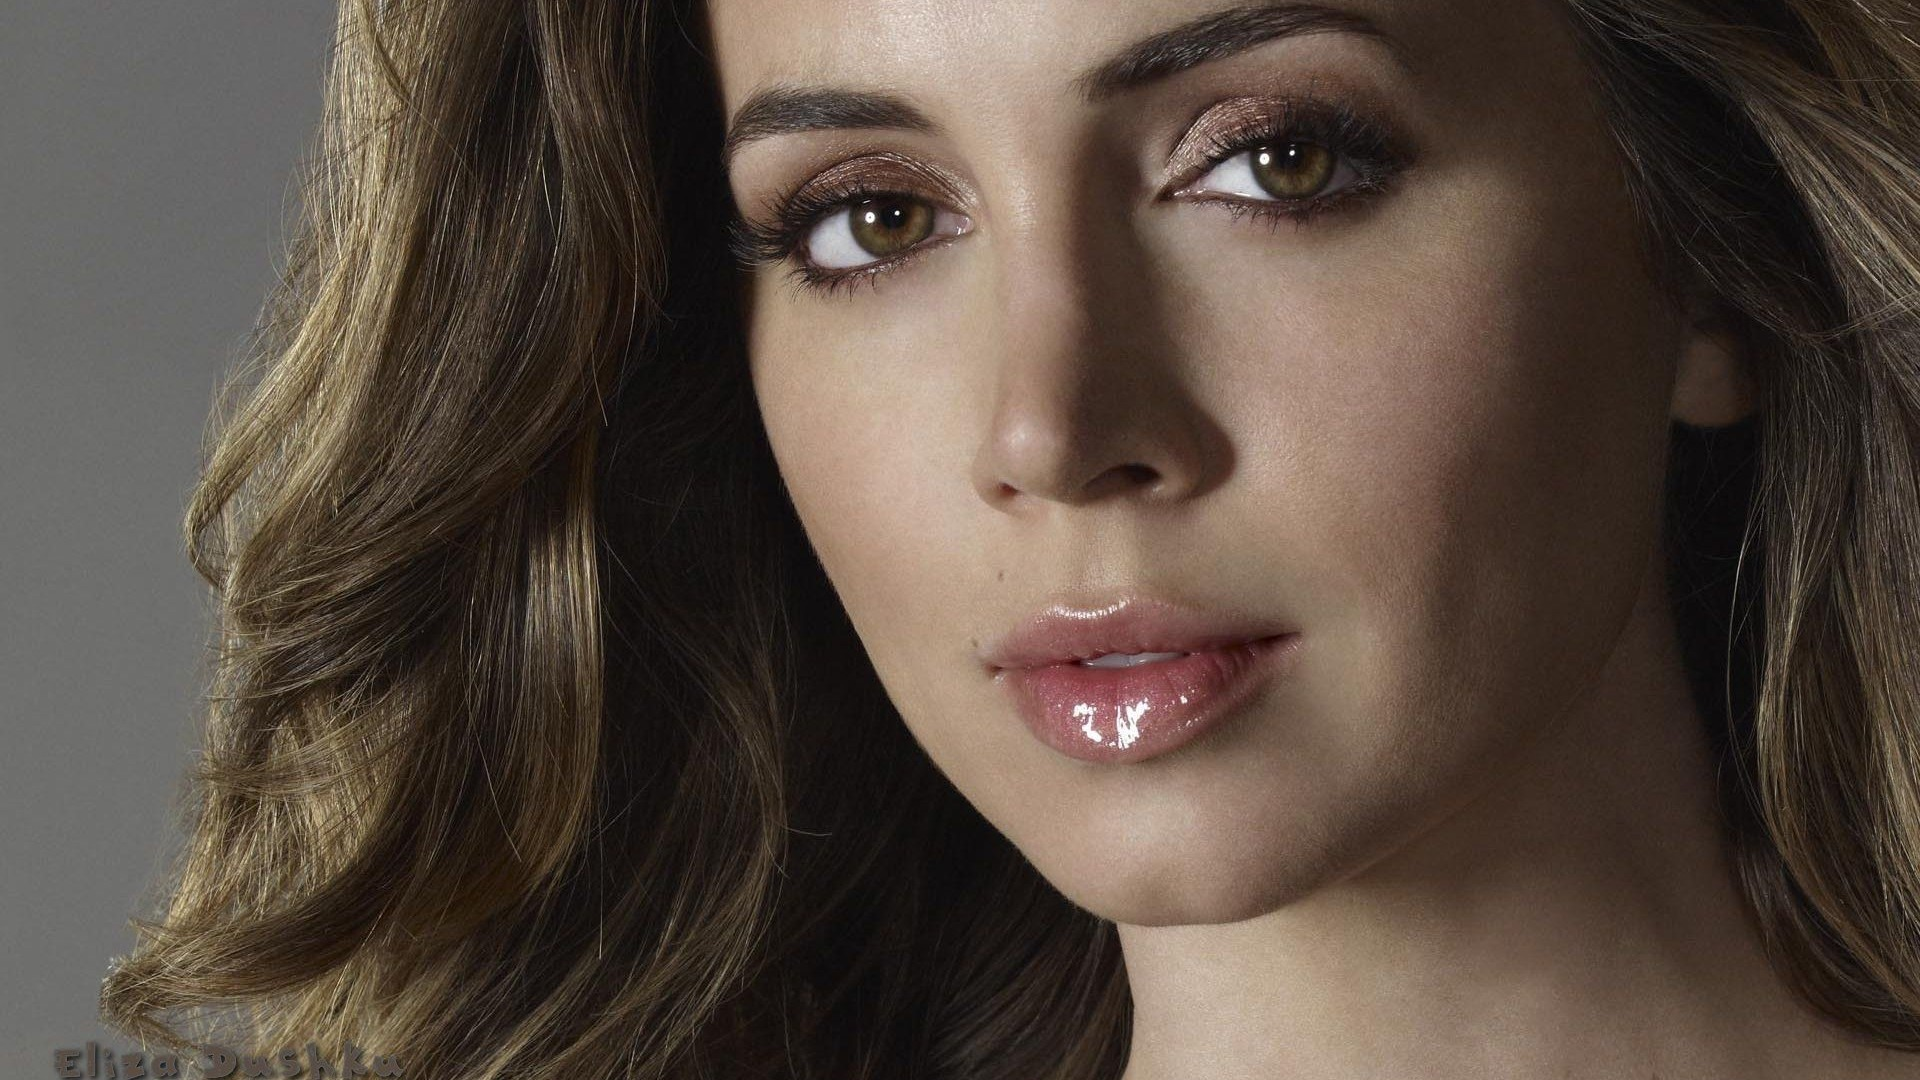 Eliza Dushku beautiful wallpaper #15 - 1920x1080.